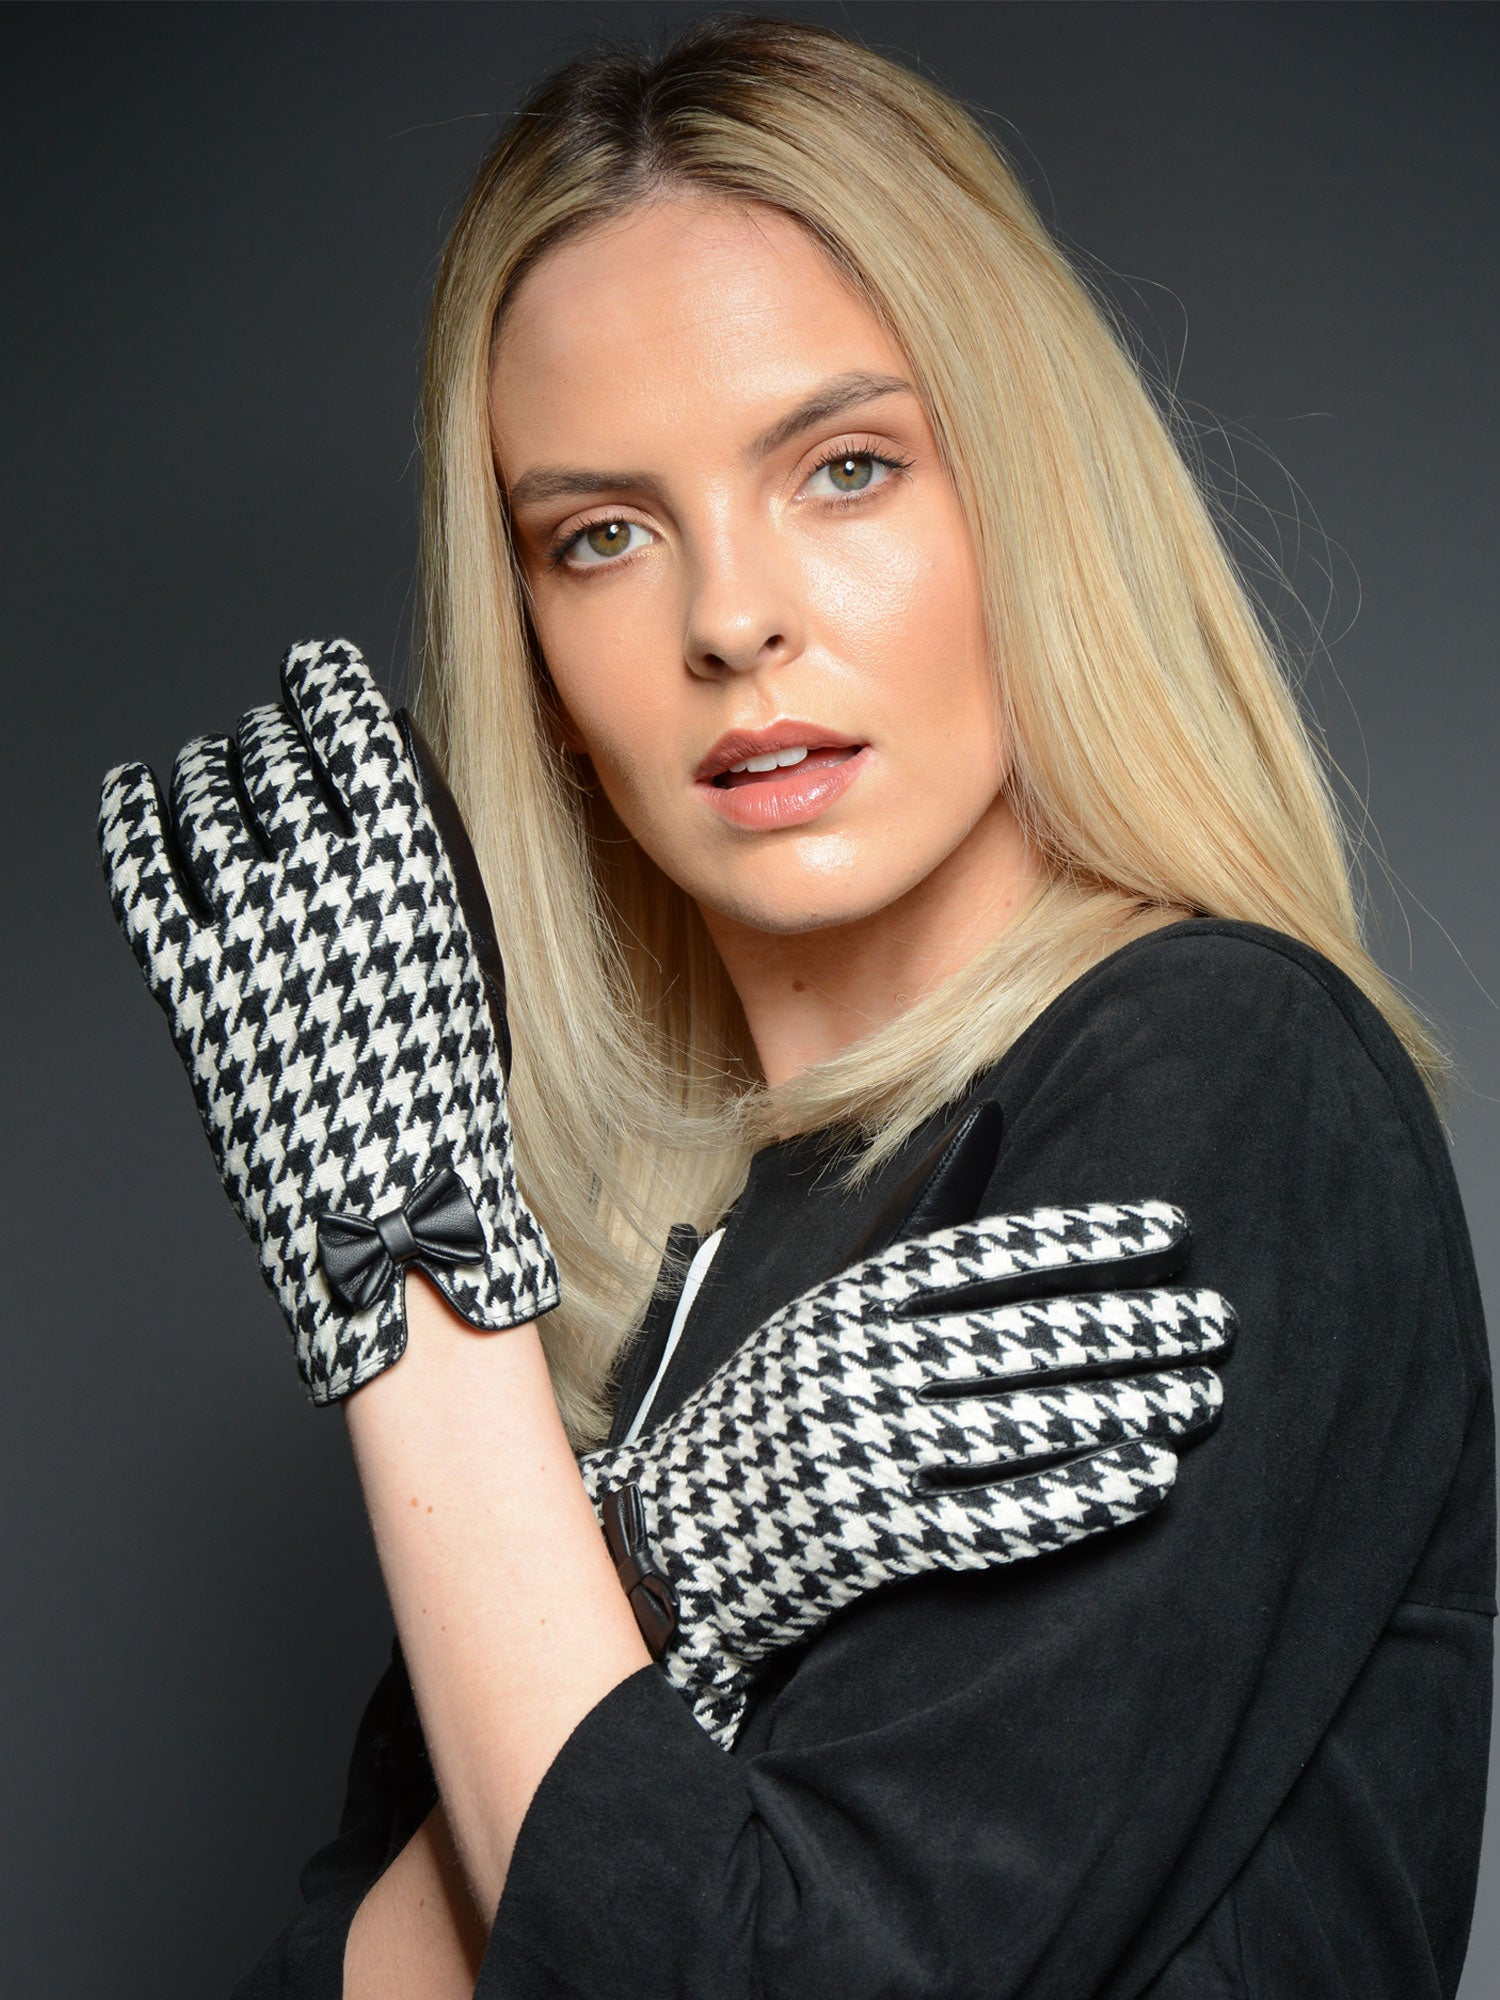 Houndstooth Women's Luxury Warm Leather Gloves